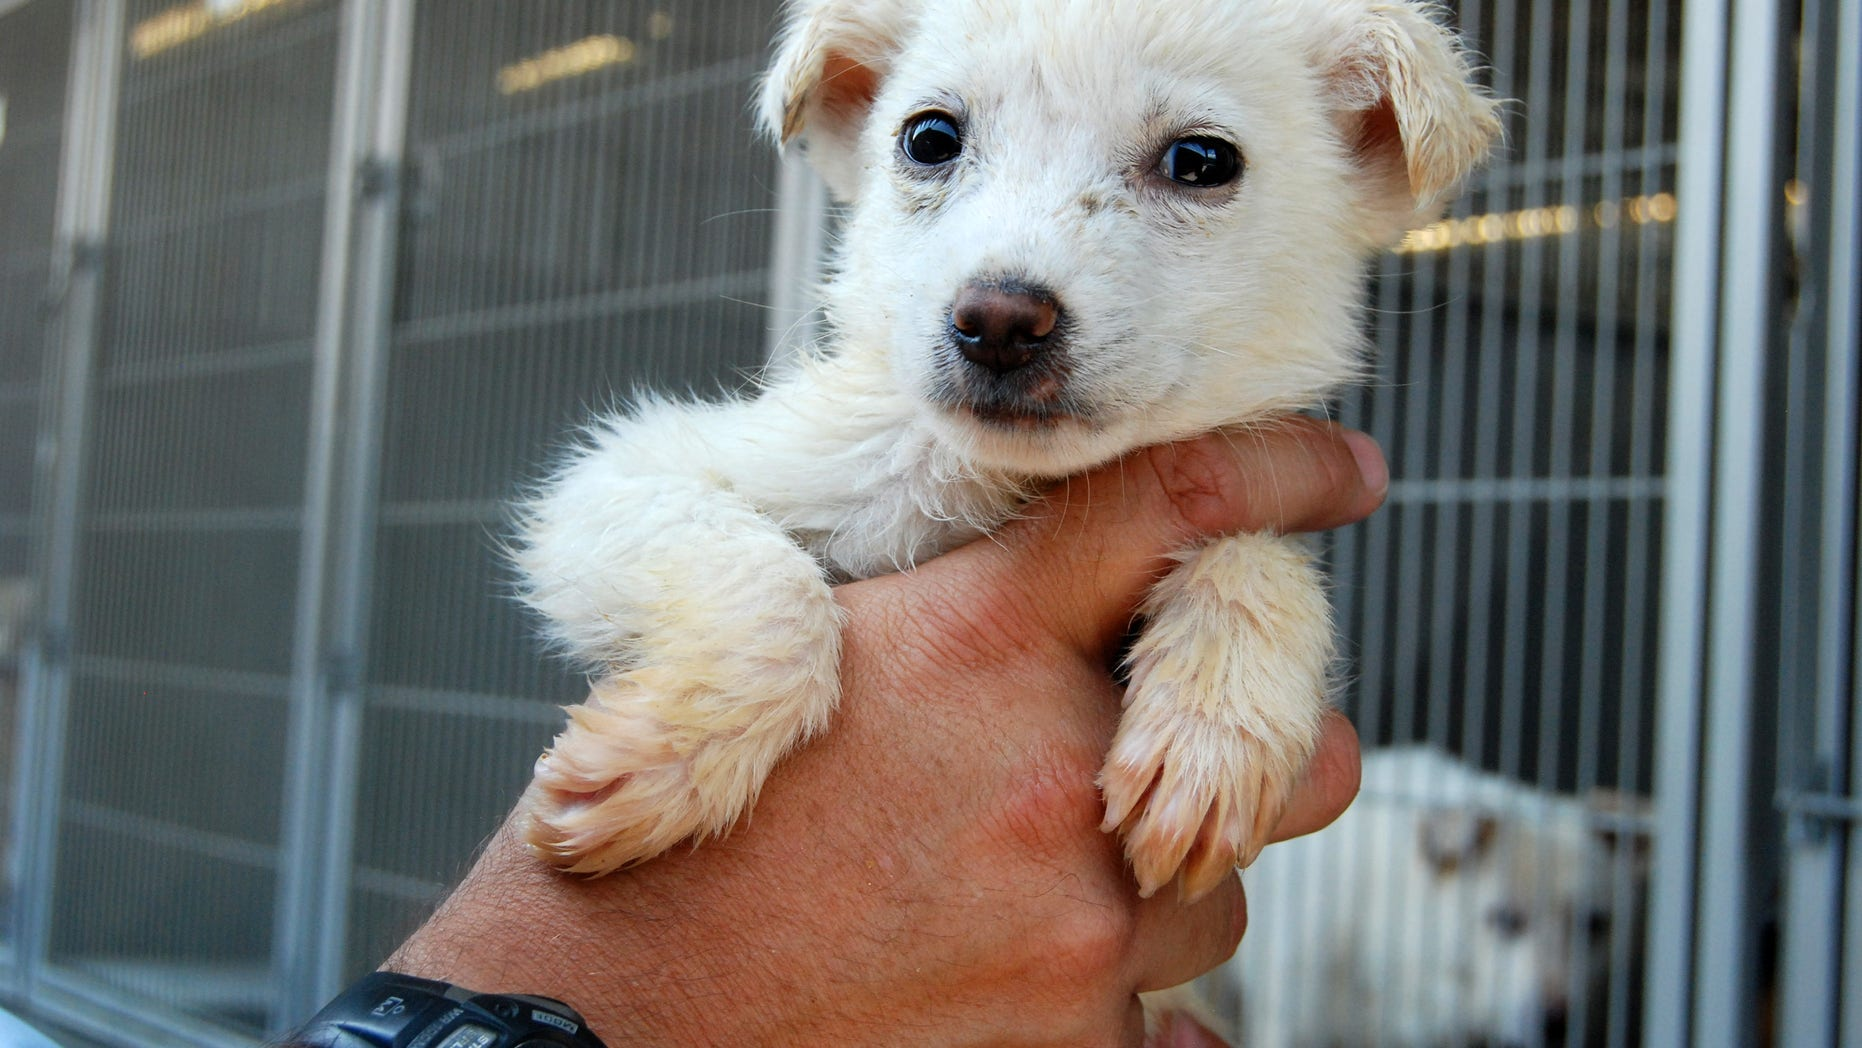 July 5, 2013: This image provided by the San Bernardino County Animal Shelter in San Bernardino, Calif., shows a dog held by Supervising Animal Control Officer Doug Smith at the shelter.